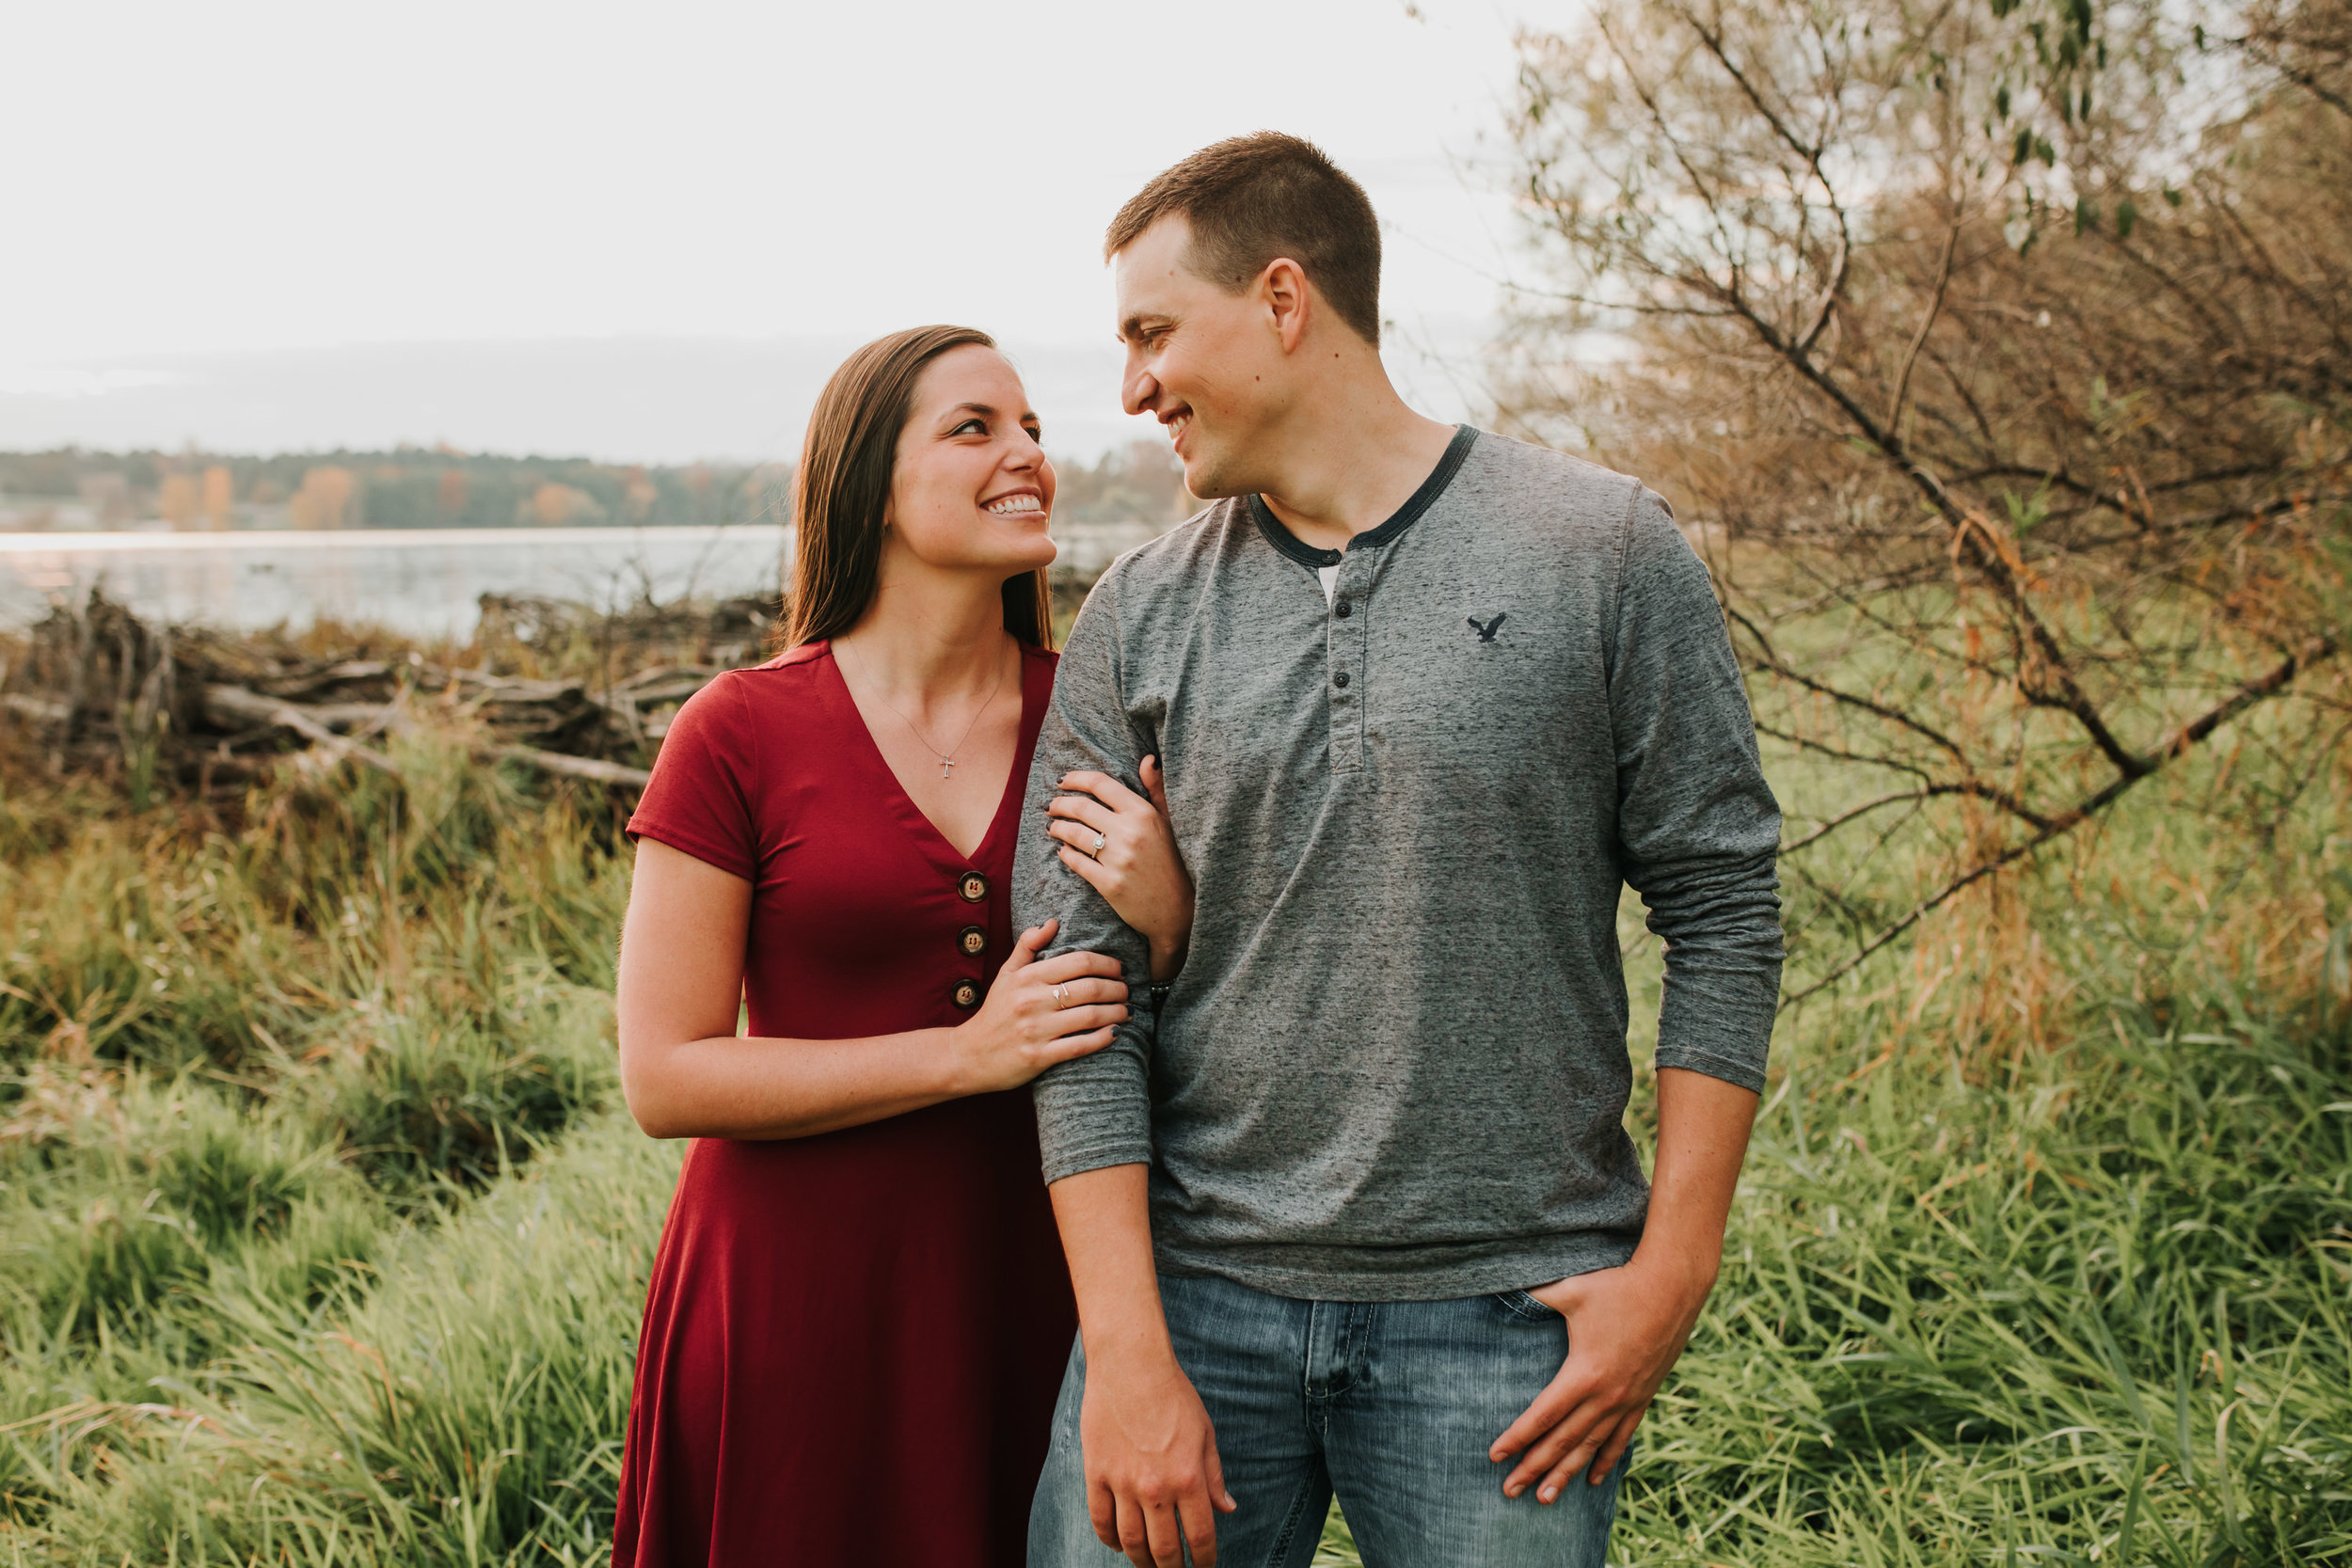 Hannah & Brett - Engaged - Nathaniel Jensen Photography - Omaha Nebraska Wedding Photograper - Omaha Nebraska Engagement Session - Chalco Hills Engagement Session-165.jpg